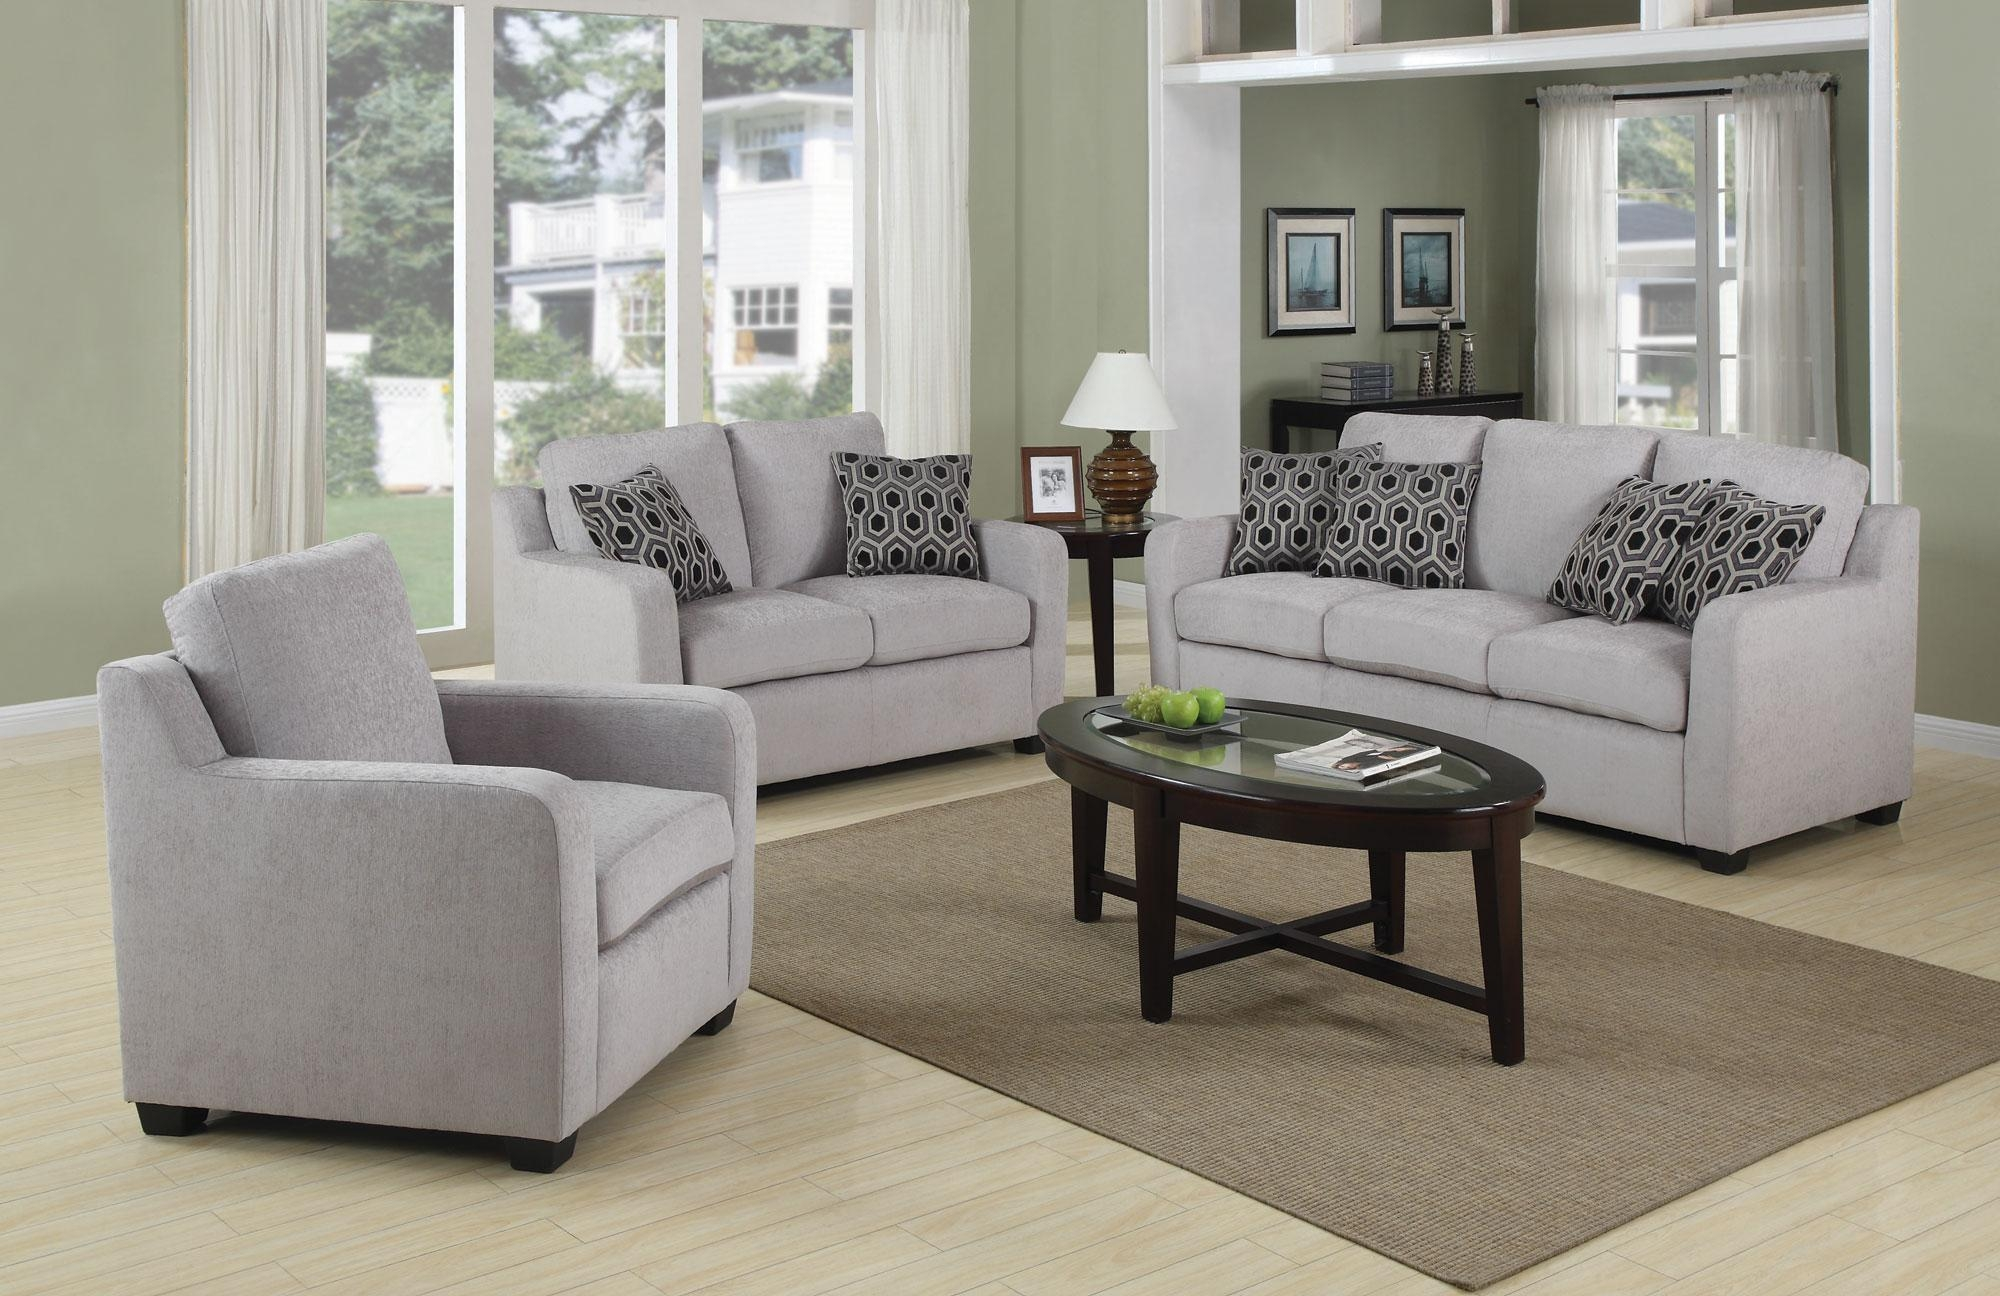 Furniture: Amazing Set Of Chairs For Living Room Cheap Couches Inside Sofa Chairs For Living Room (Image 7 of 20)